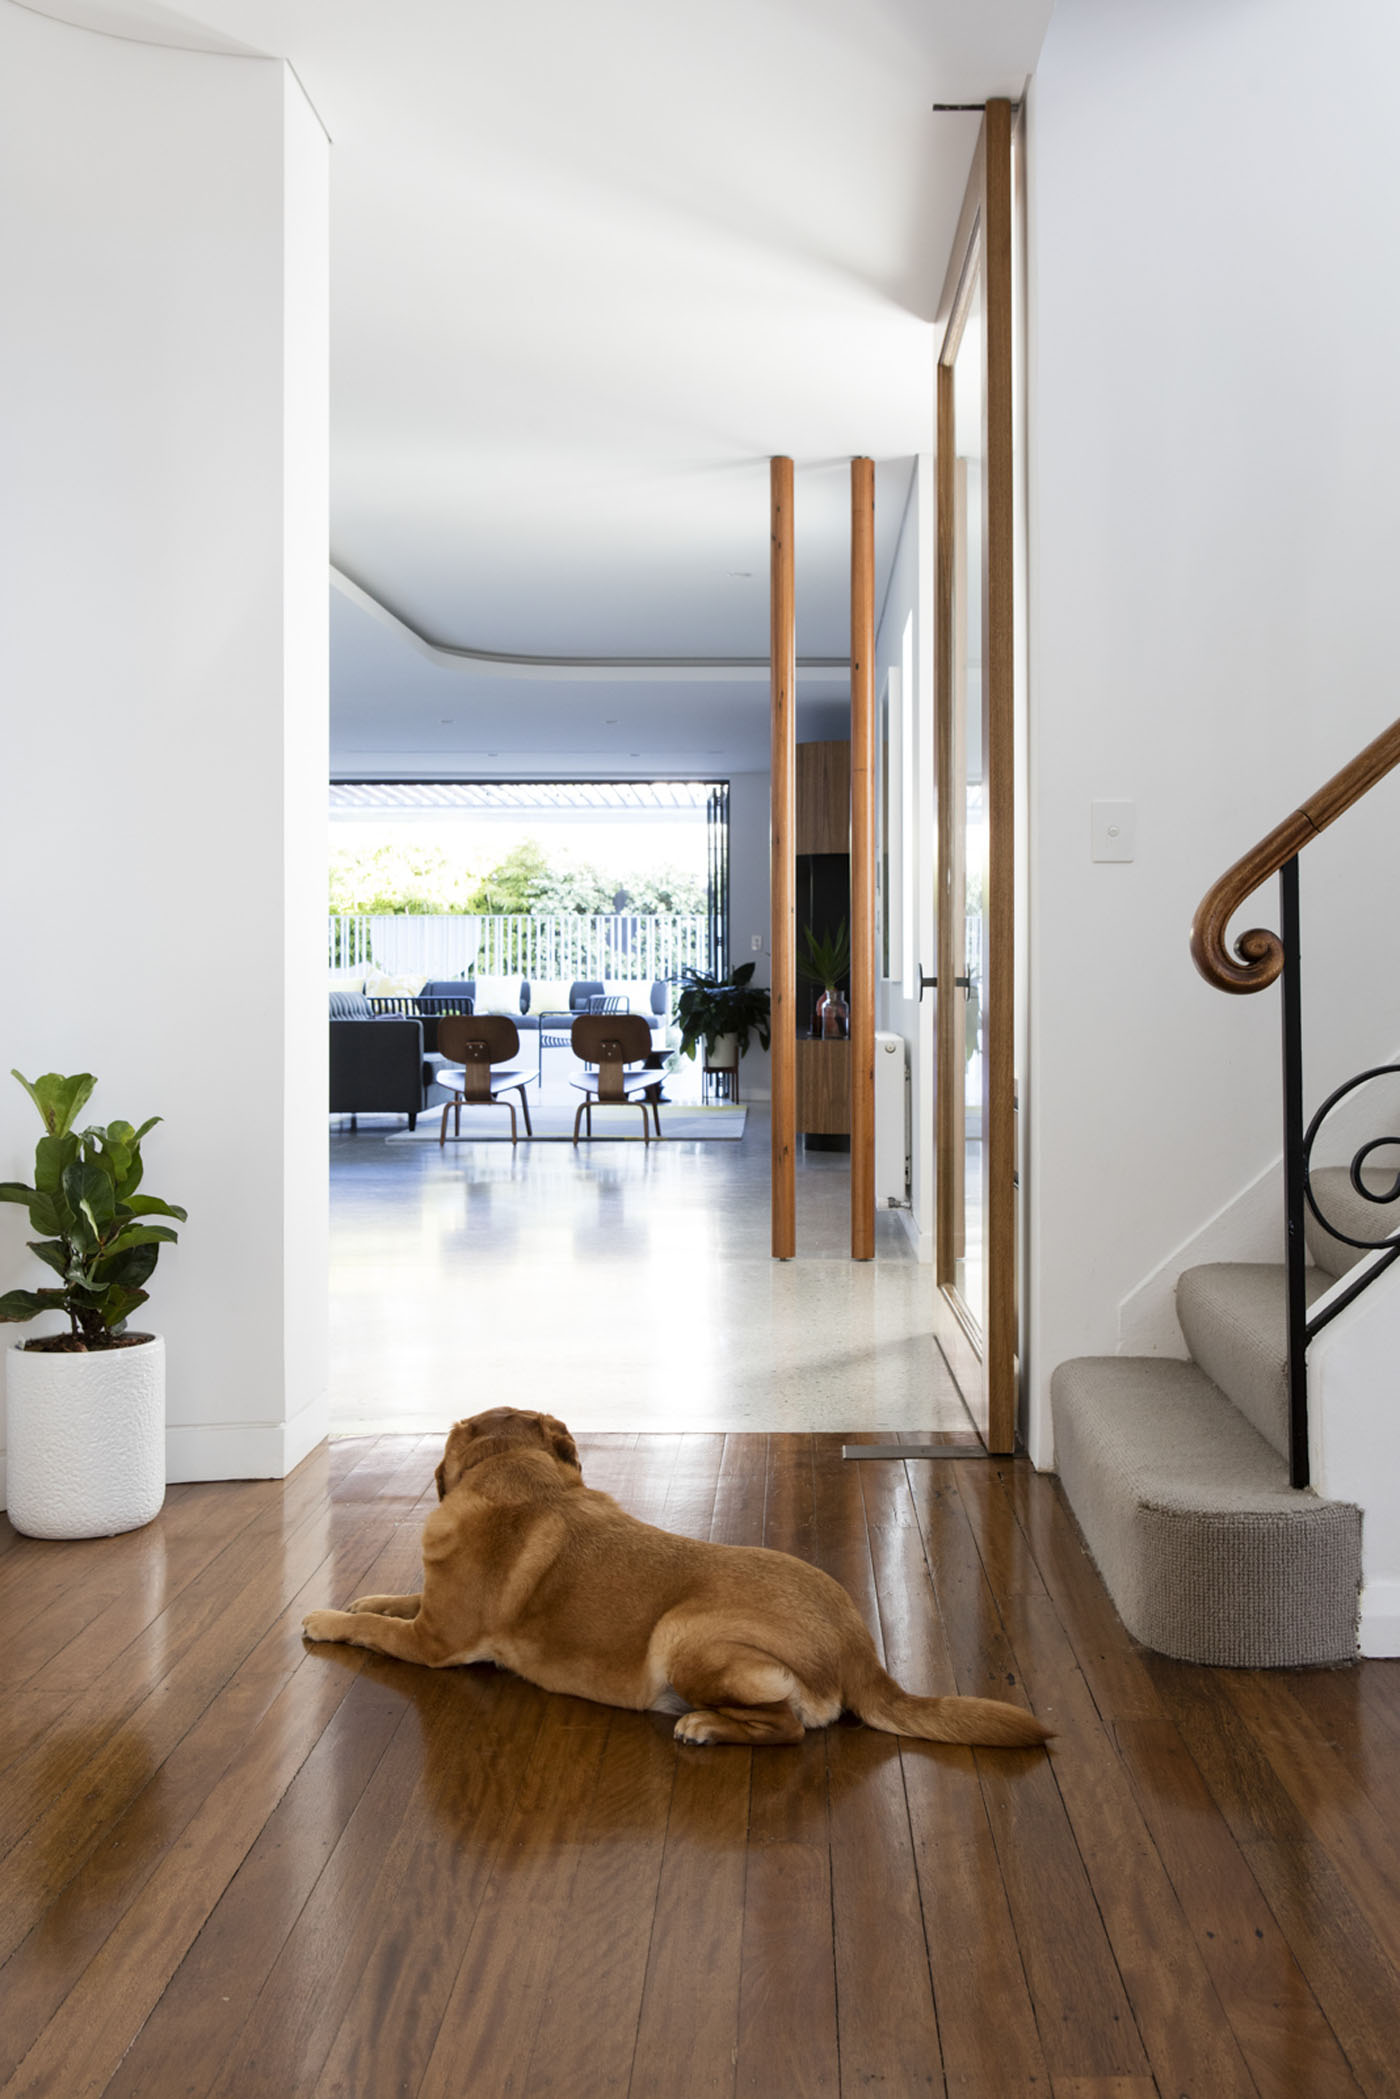 Conway Atkins House in Dover Heights by Sydney architect Sam Crawford Architect. Allen the dog keeps guard over his kingdom.